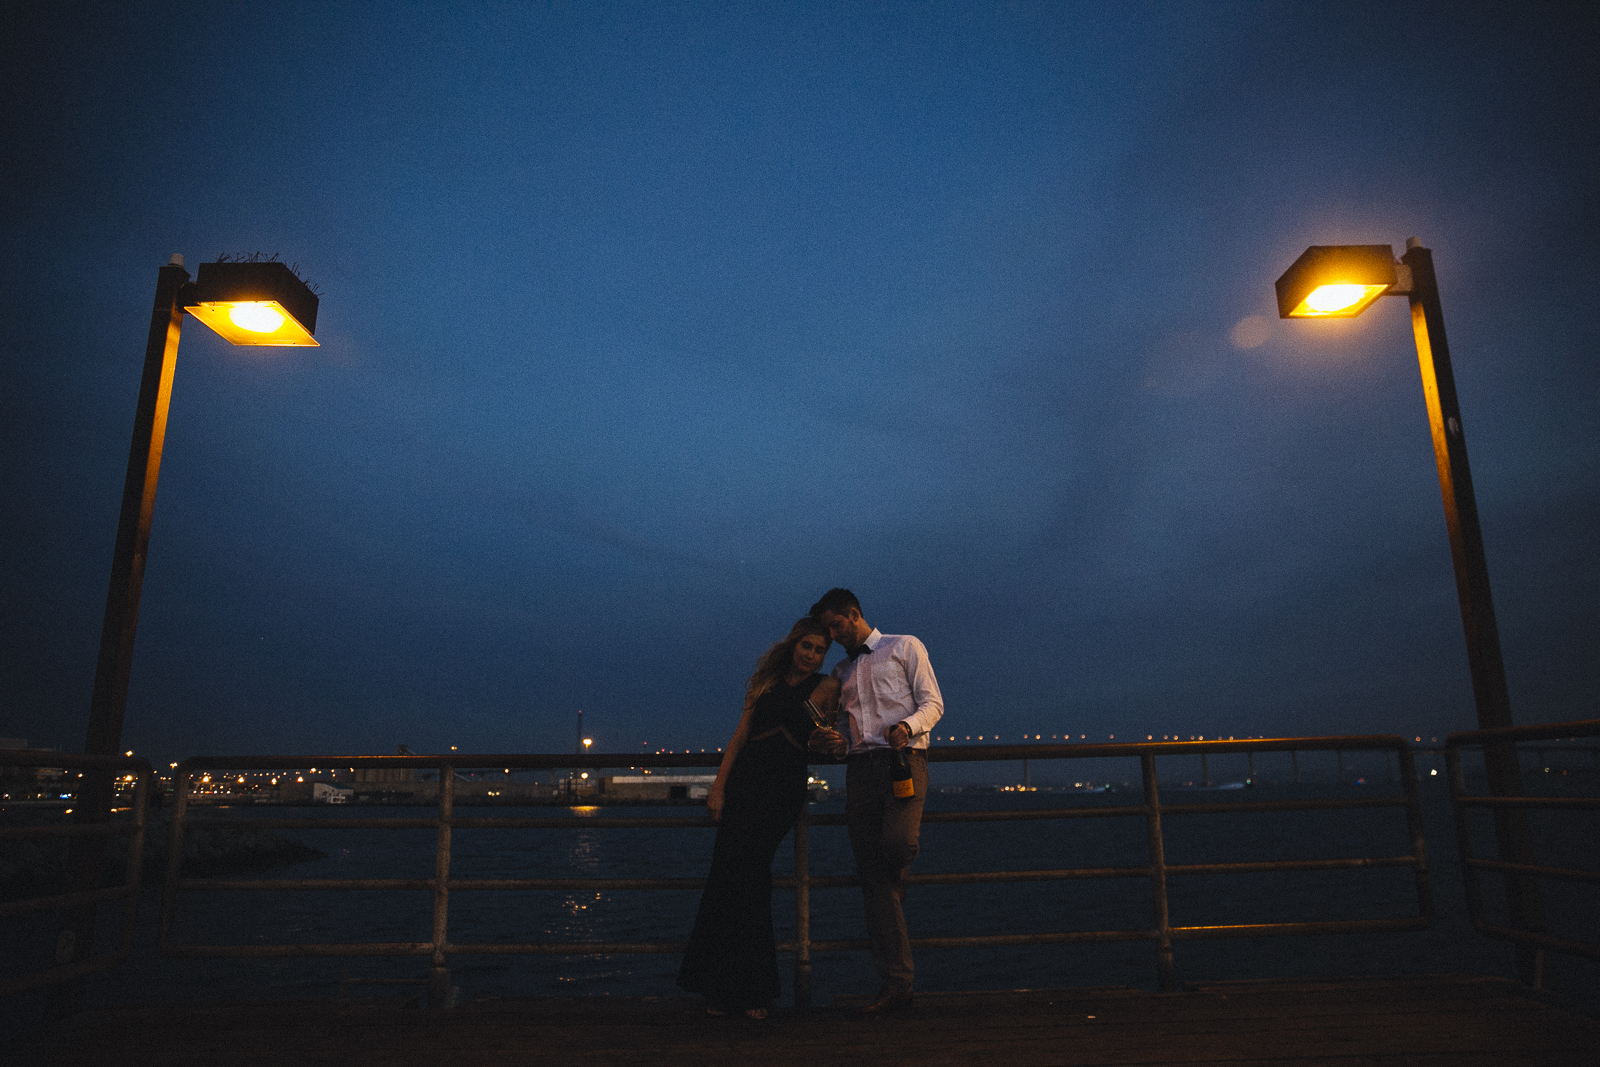 HALEY_&_MICHAEL_ENGAGEMENT_EMBARCADERO_March 03, 2016_IMG_9764.JPG